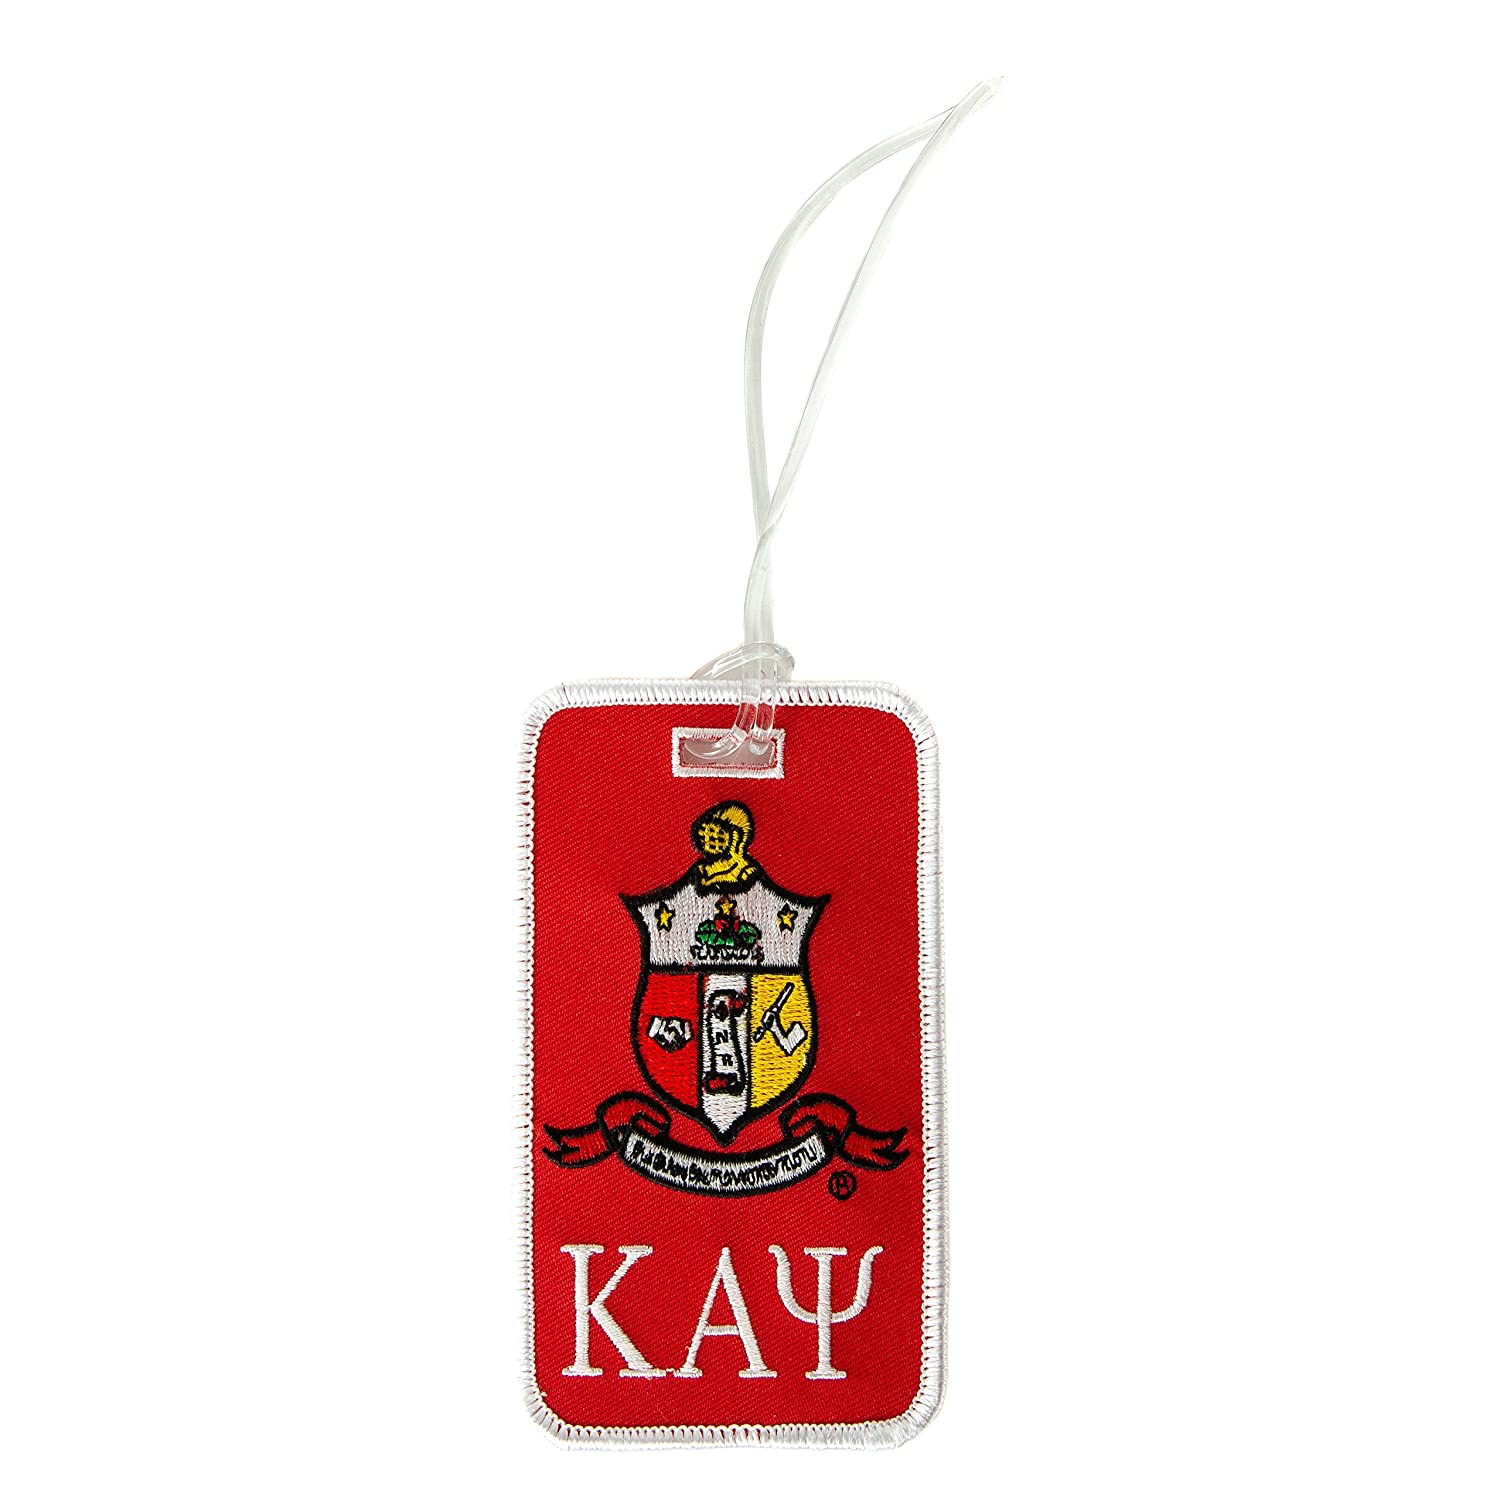 97fb1d471583 Kappa alpha psi fraternity crest embroidered luggage tag bag nupe arts  crafts sewing jpg 1500x1500 Kappa